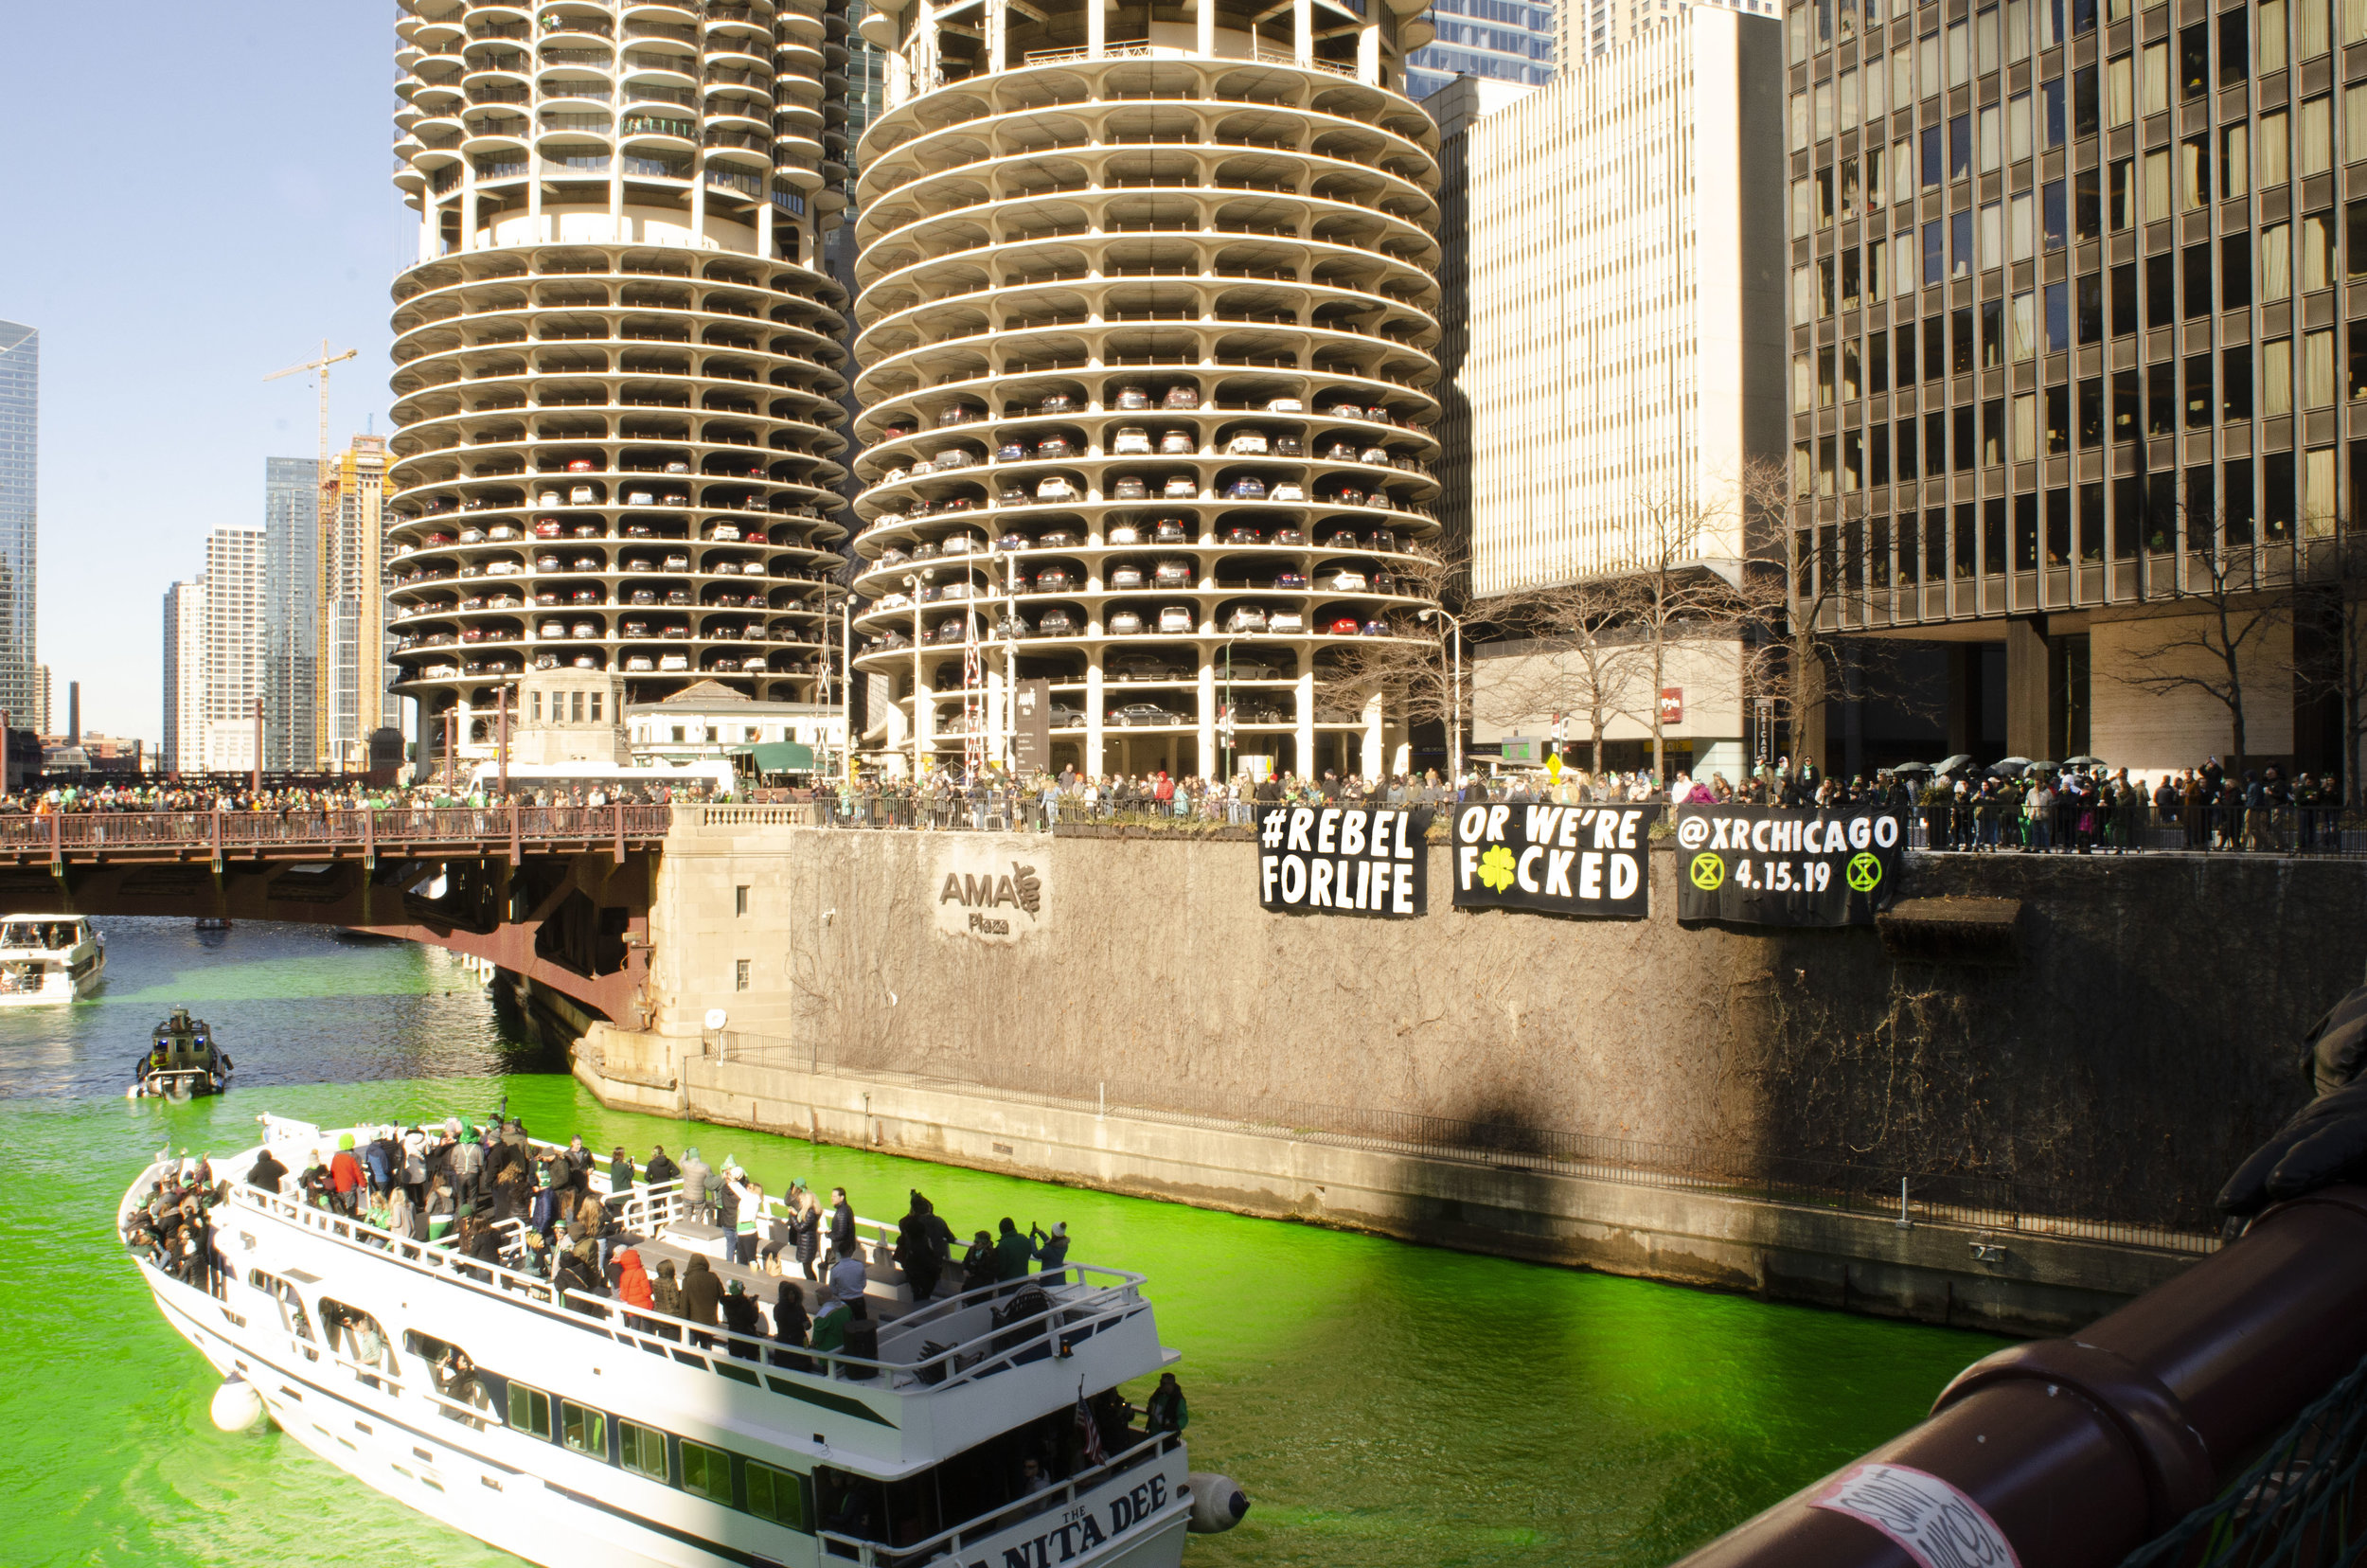 Extinction Rebellion Chicago protesting at Chicago's yearly St. Patrick's Day river dyeing